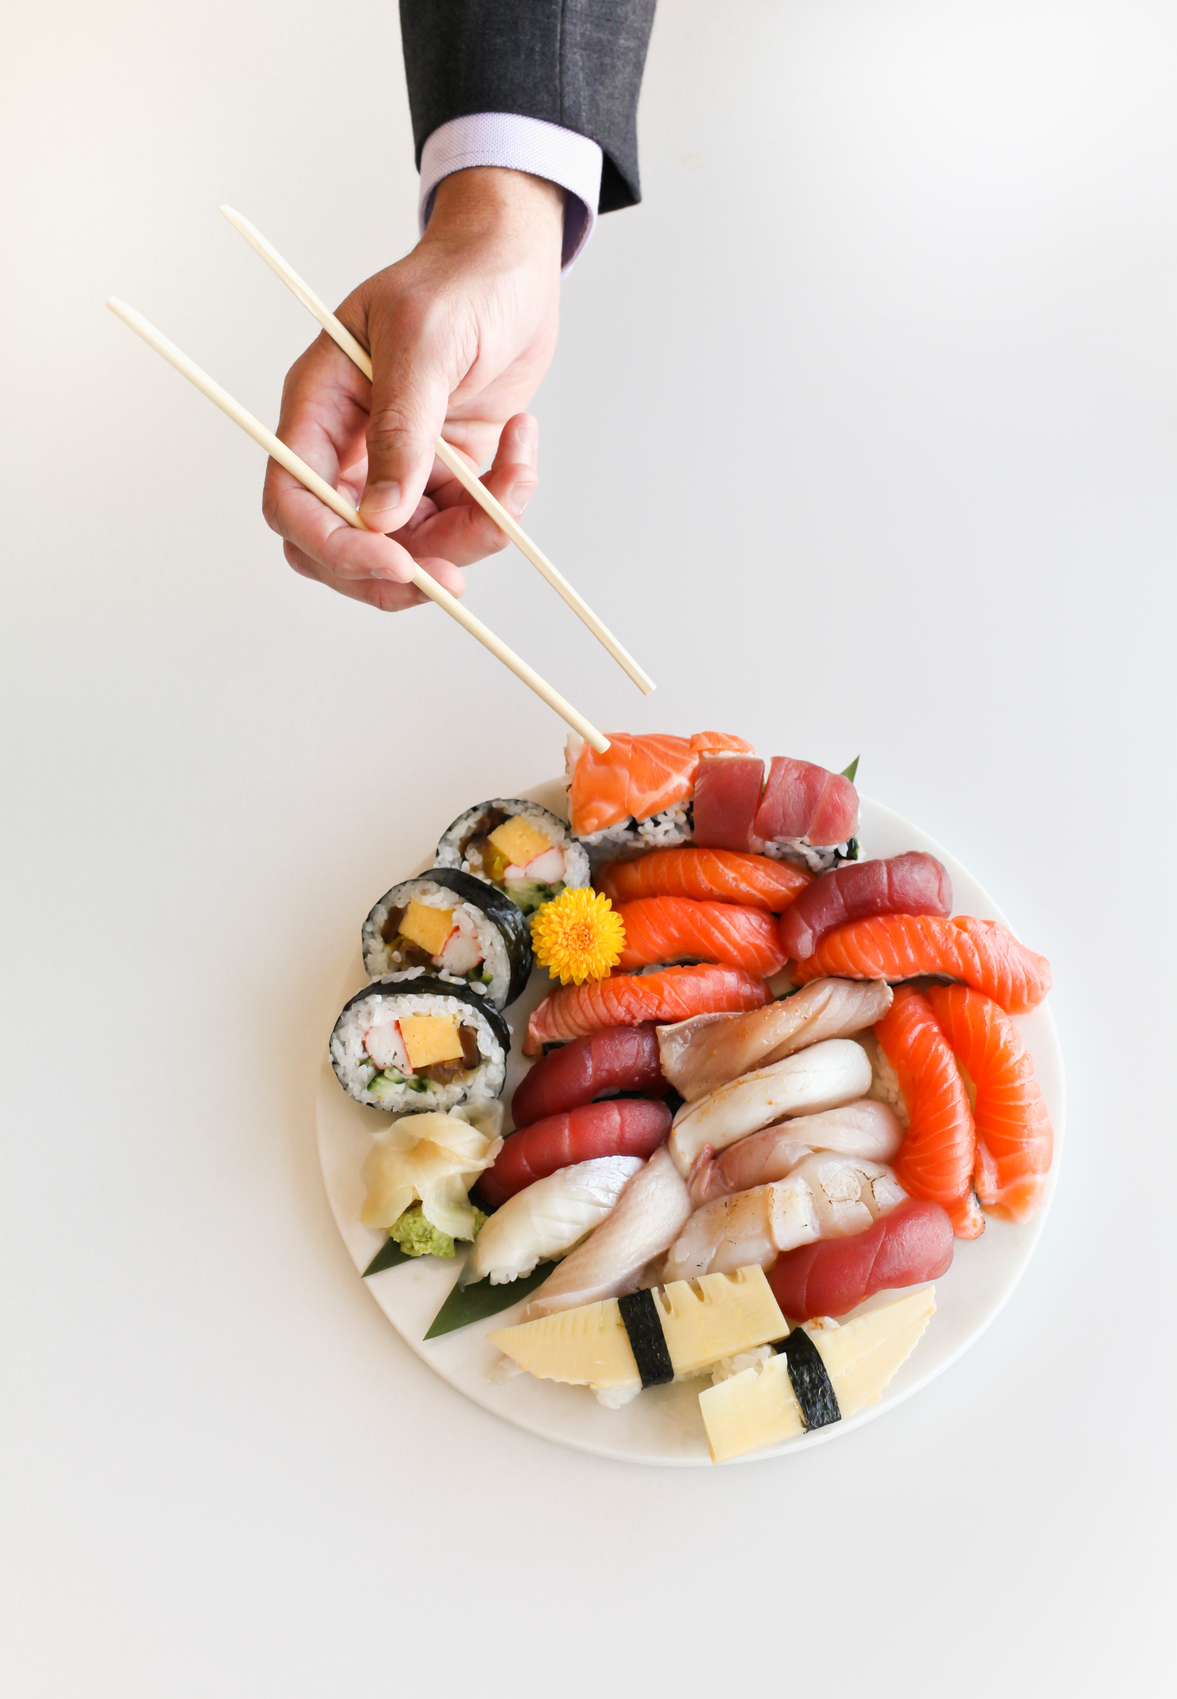 Is too much sushi bad for you